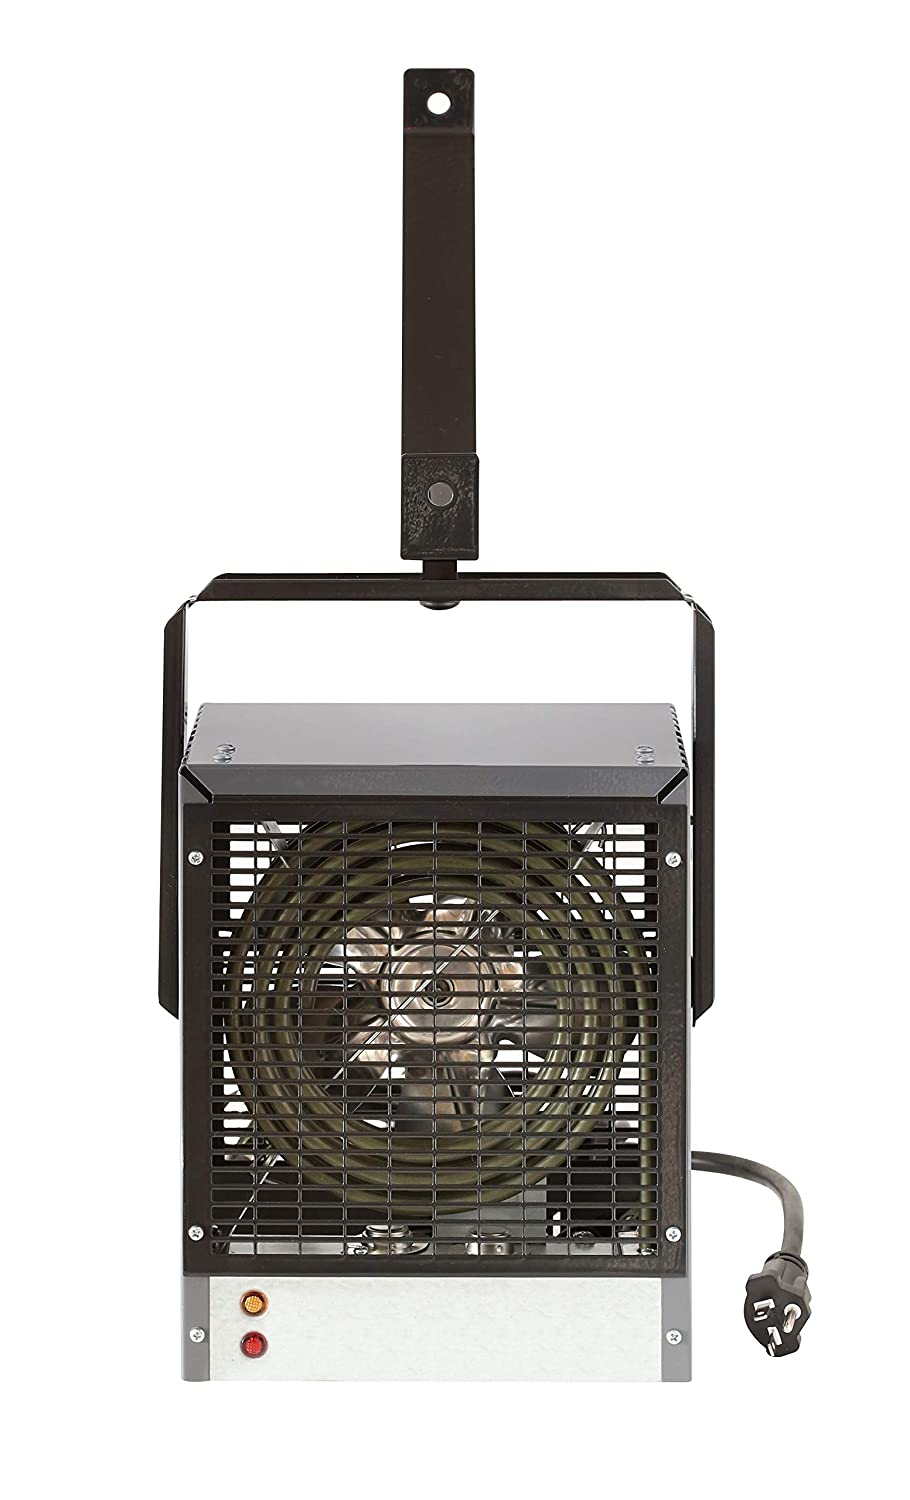 Dimplex Dgwh4031g Garage And Shop Large 4000 Watt Forced Wiring 3 Wire Hot Tub 4 Circuit Air Industrial Space Heater In Gray Black Finish Home Kitchen